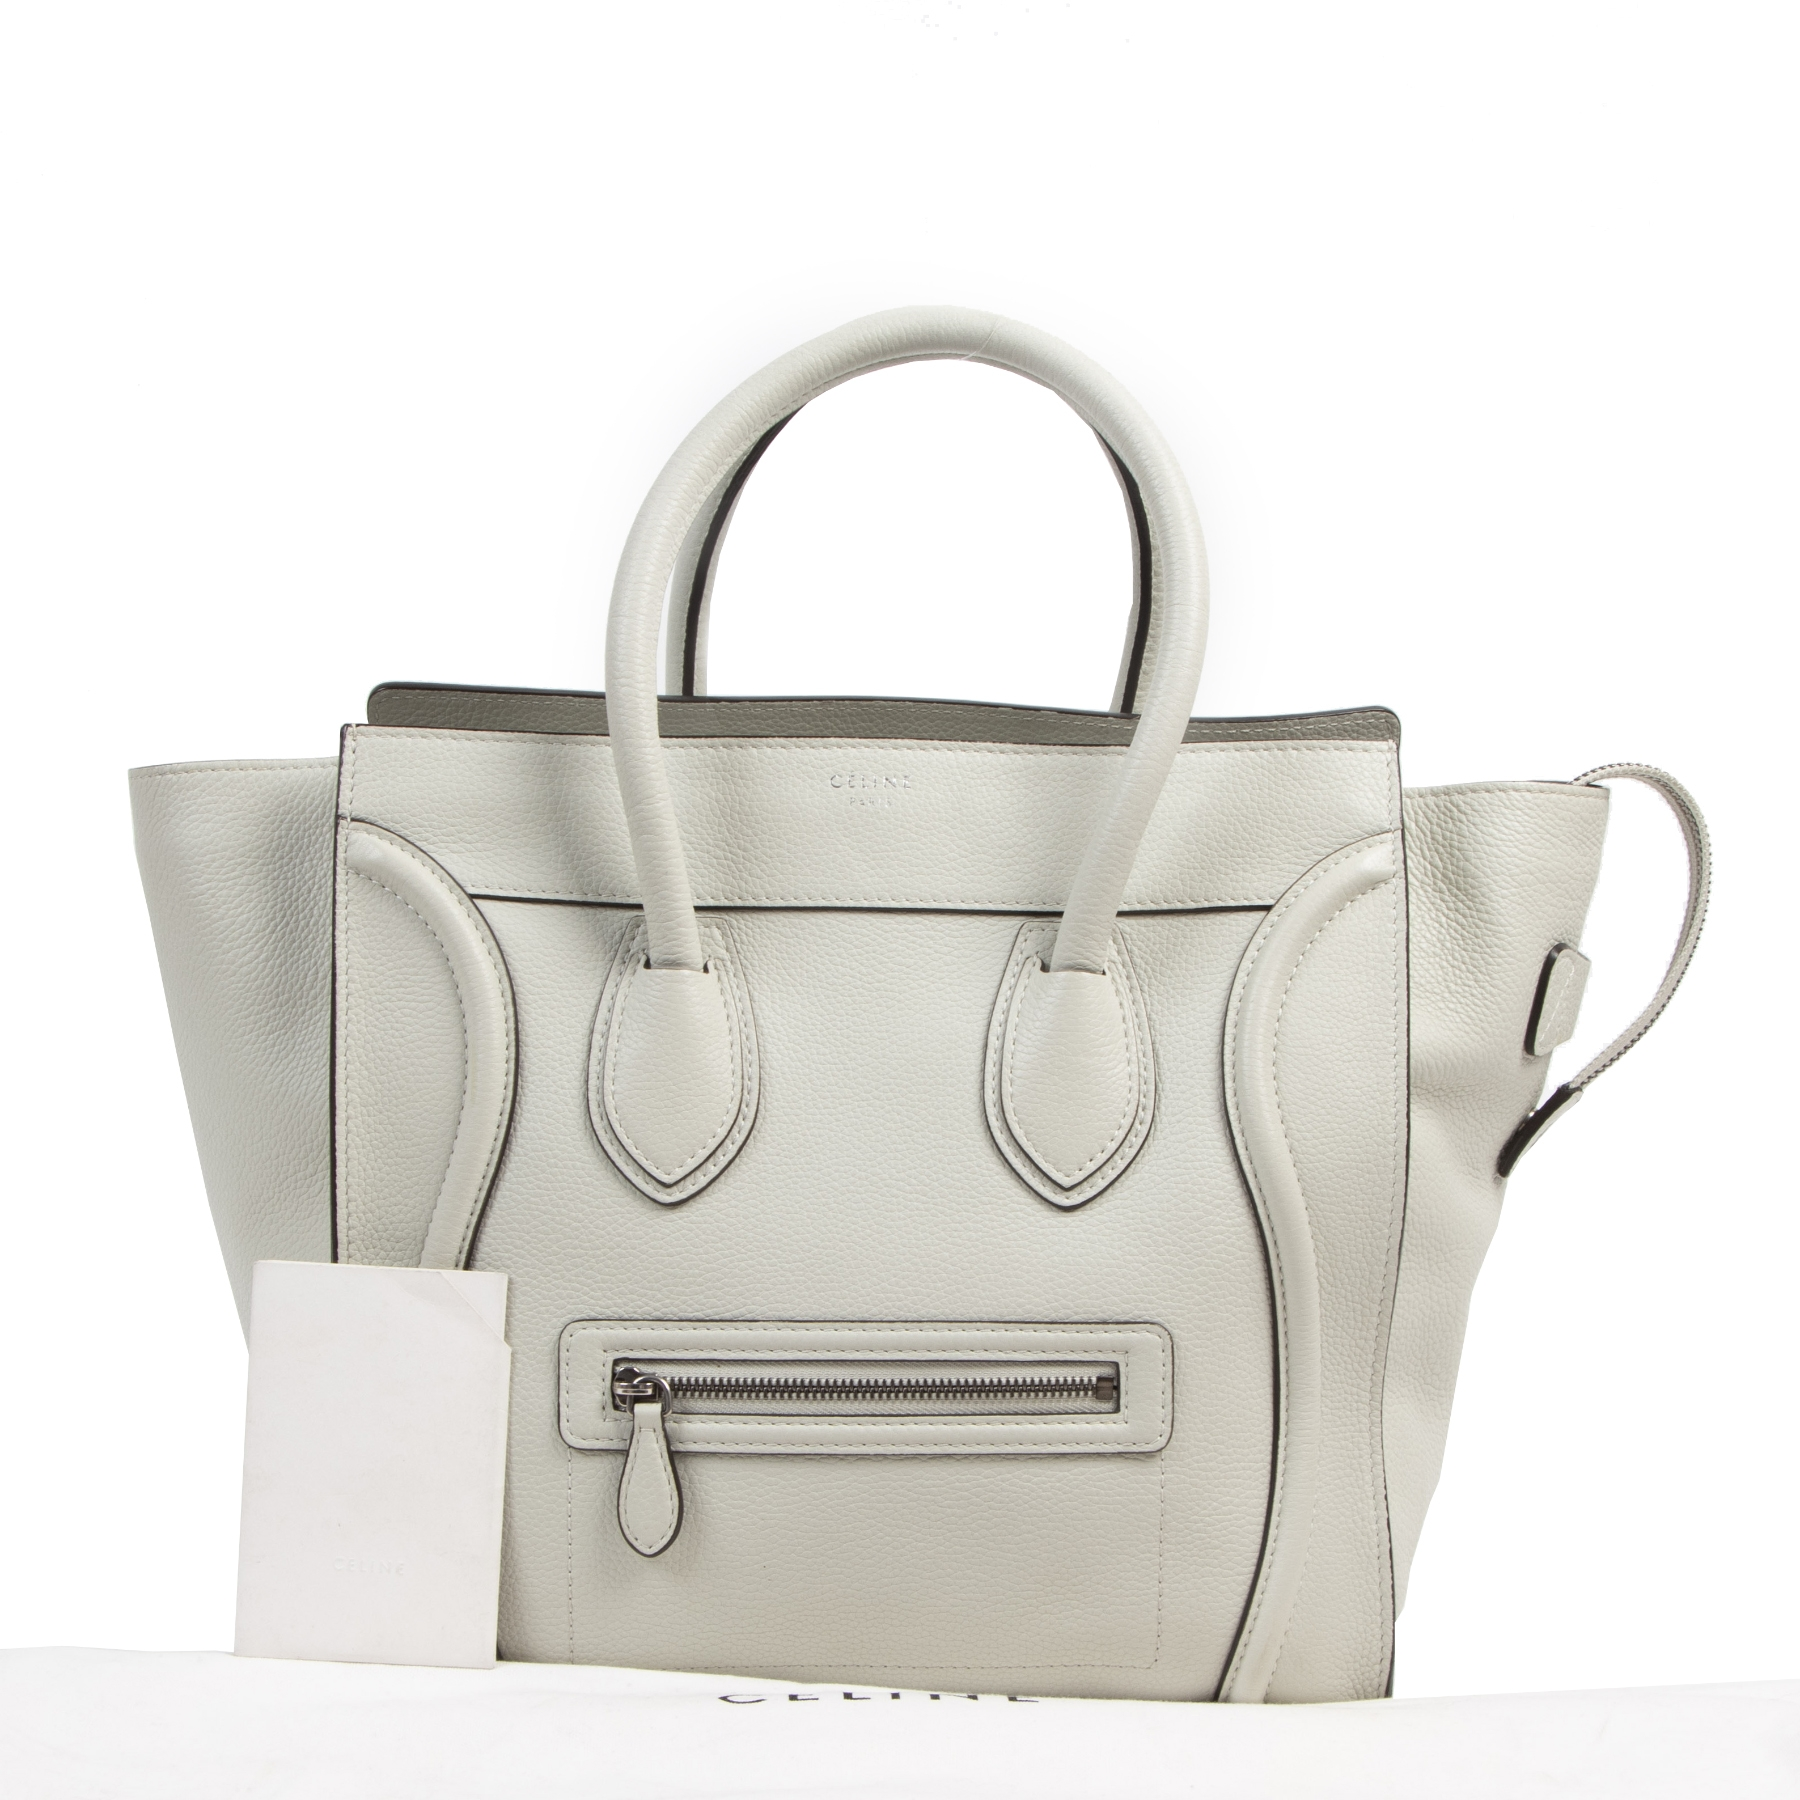 Authentieke tweedehands vintage Celine Grey Leather Luggage Tote koop online webshop LabelLOV